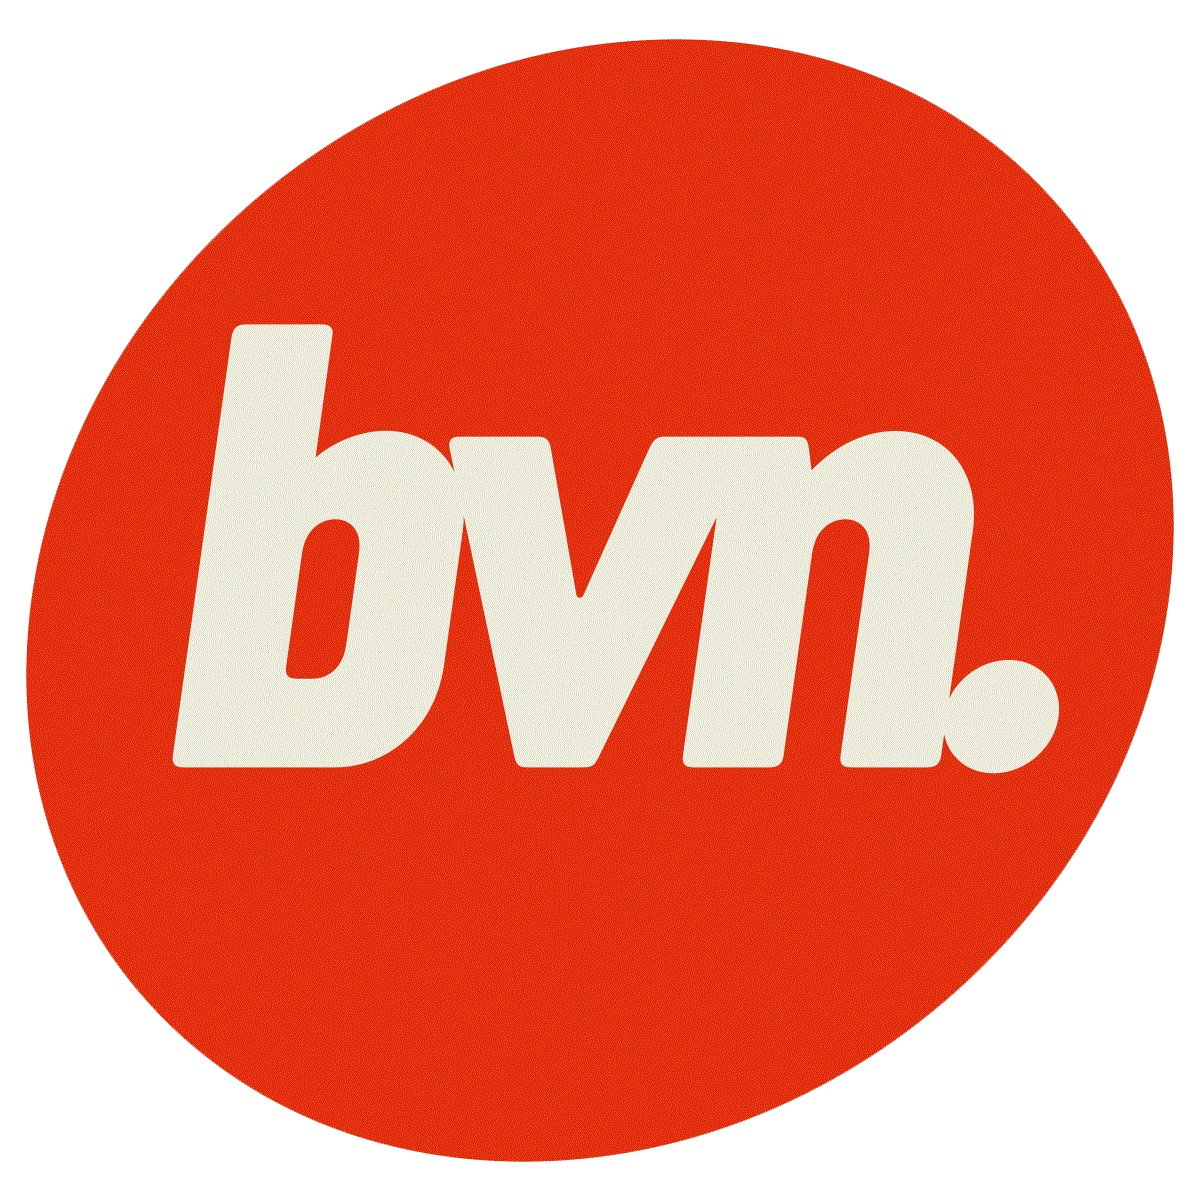 Changes to BVN on satellite in Europe